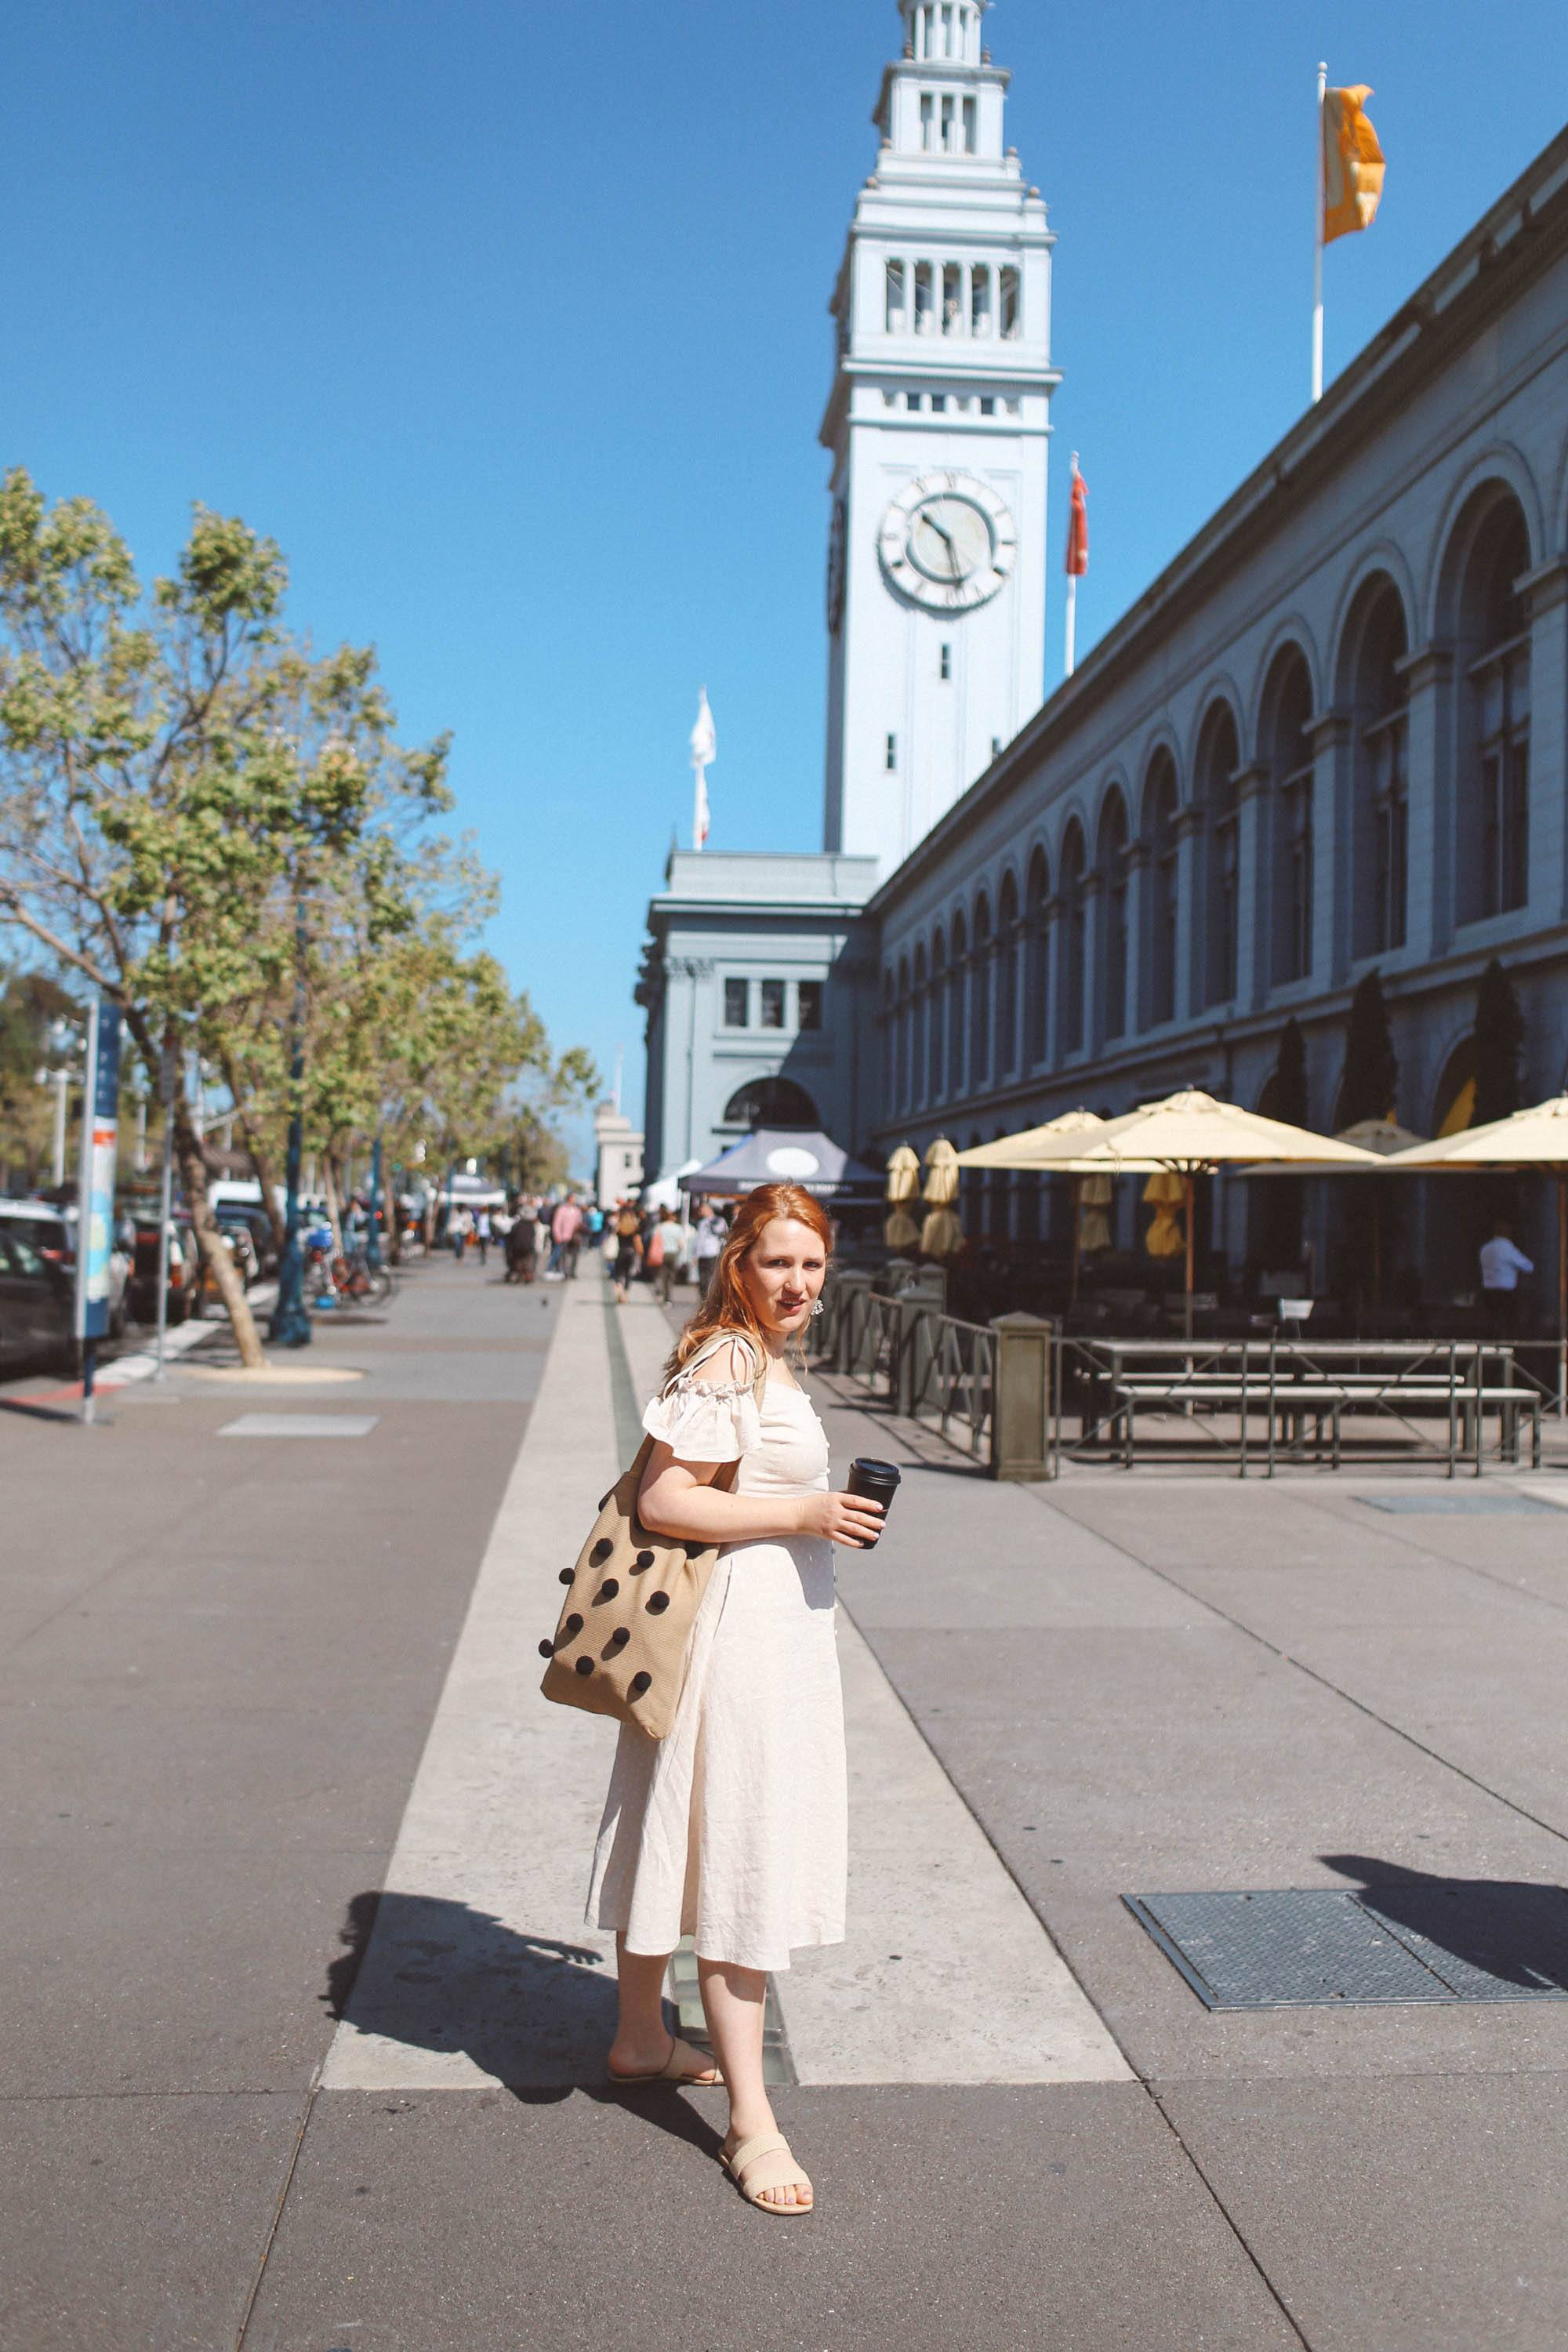 Woman wearing vintage dress holding coffee by ferry building